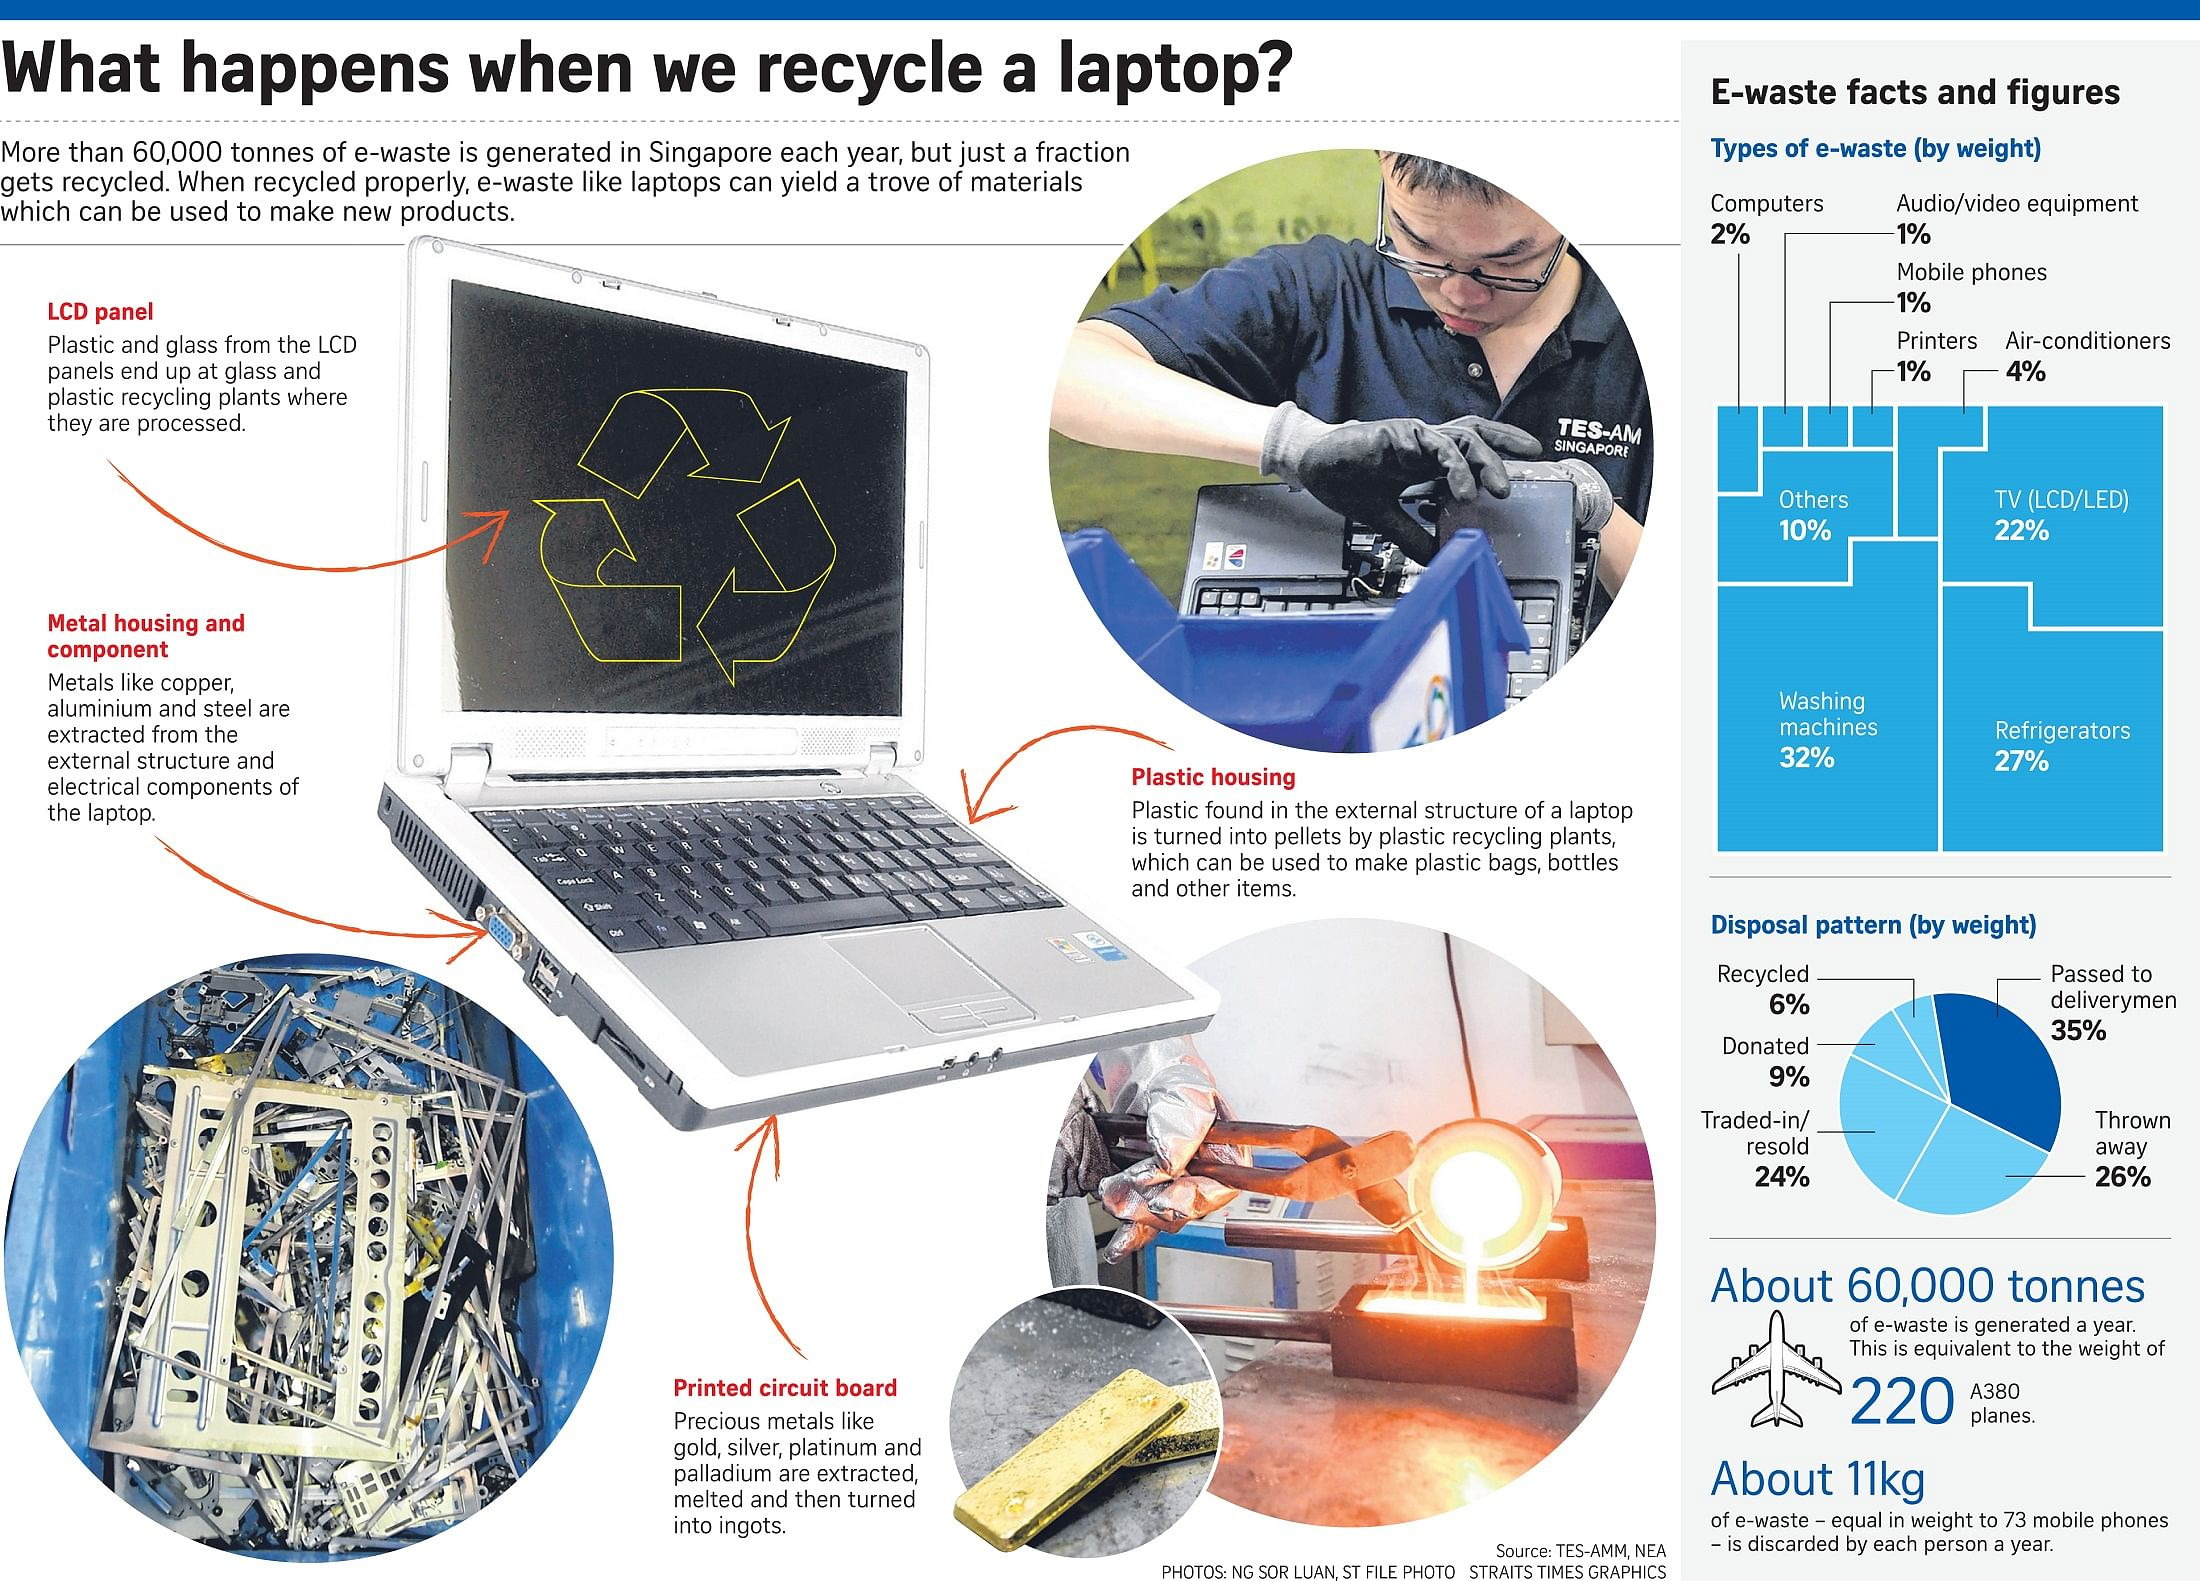 Law to spur e-waste recycling 'a good way to protect